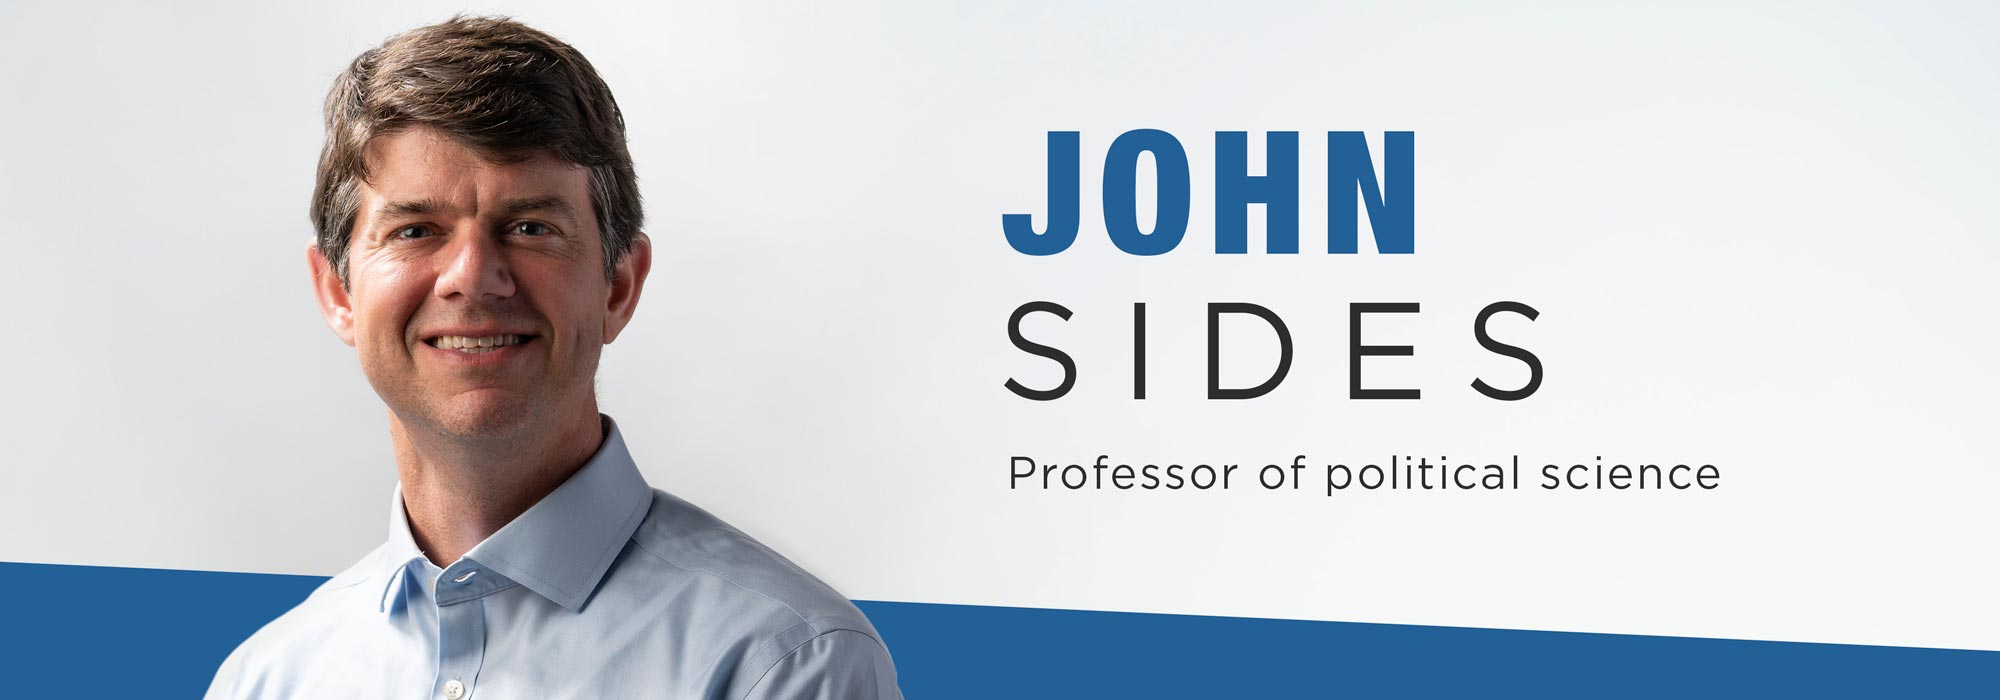 New faculty John Sides: Interpreting politics' impact on daily life